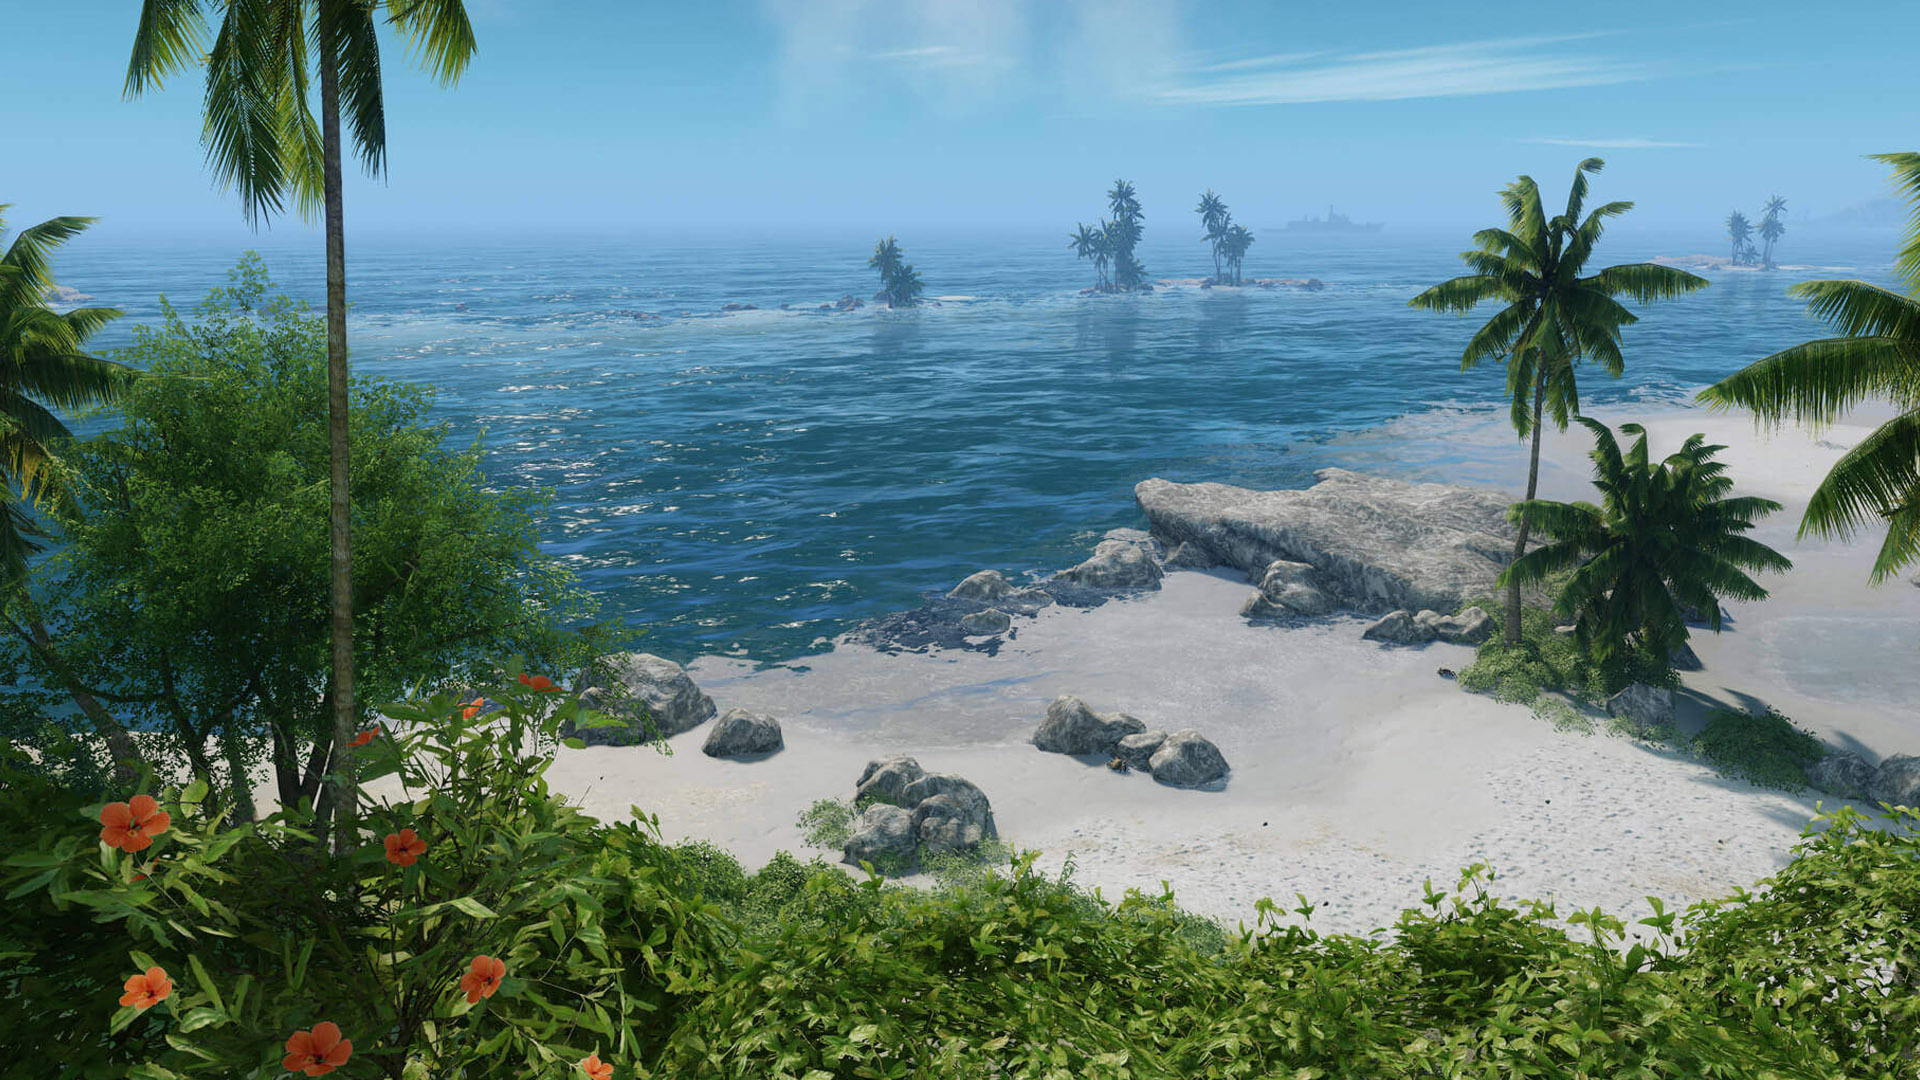 Crysis Remastered's latest patch optimises the game for high-end systems